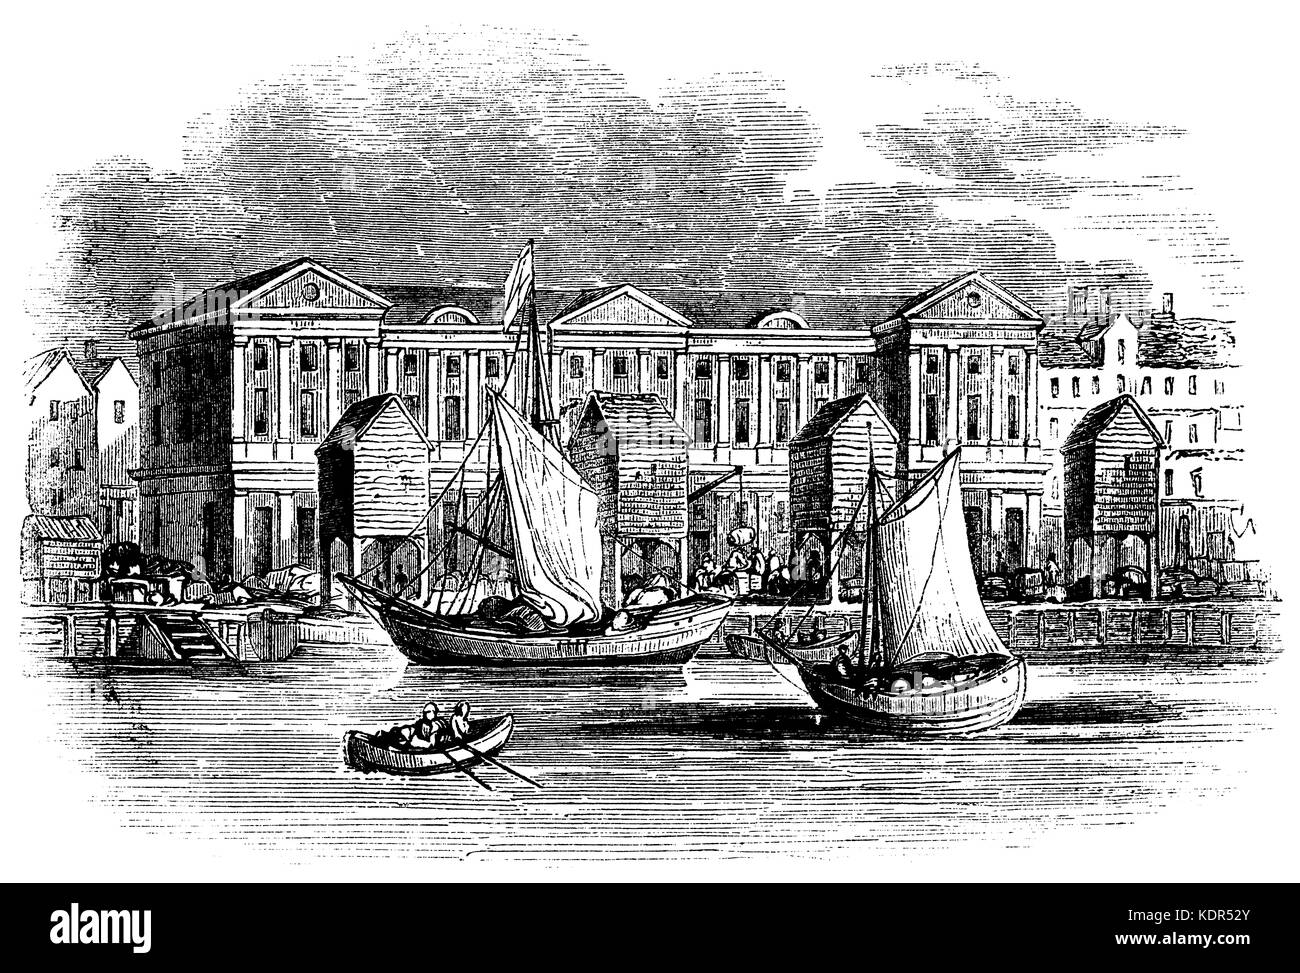 London customs house before the great fire of 1611 (from old print) - Stock Image